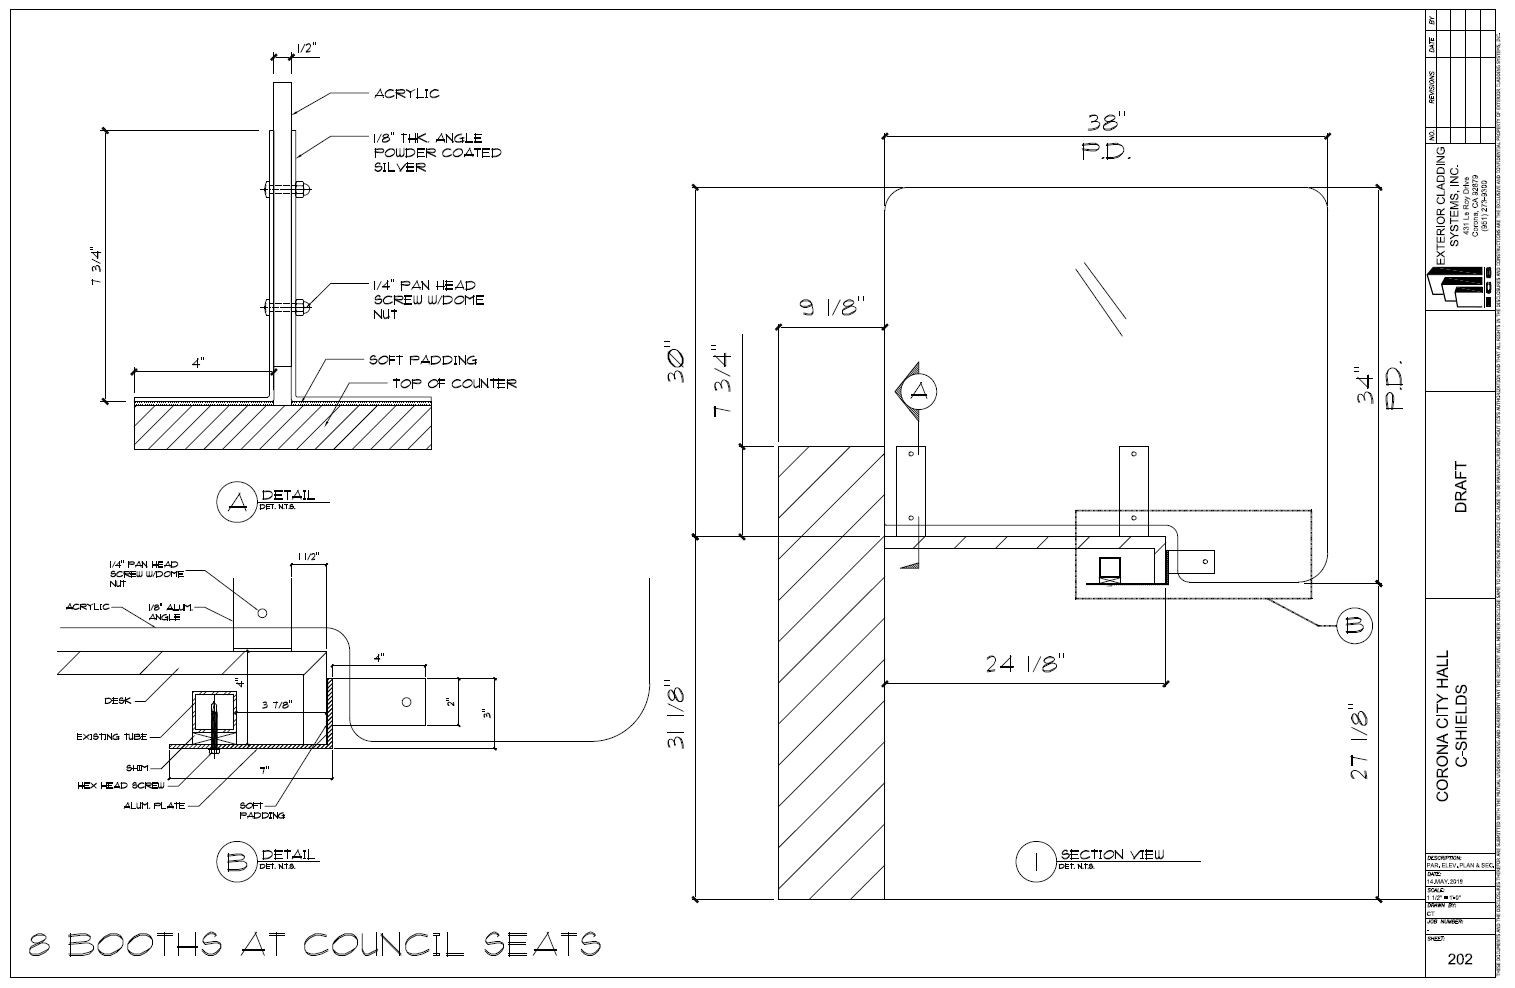 DRAWING COUNCIL SEAT DIVIDER.JPG